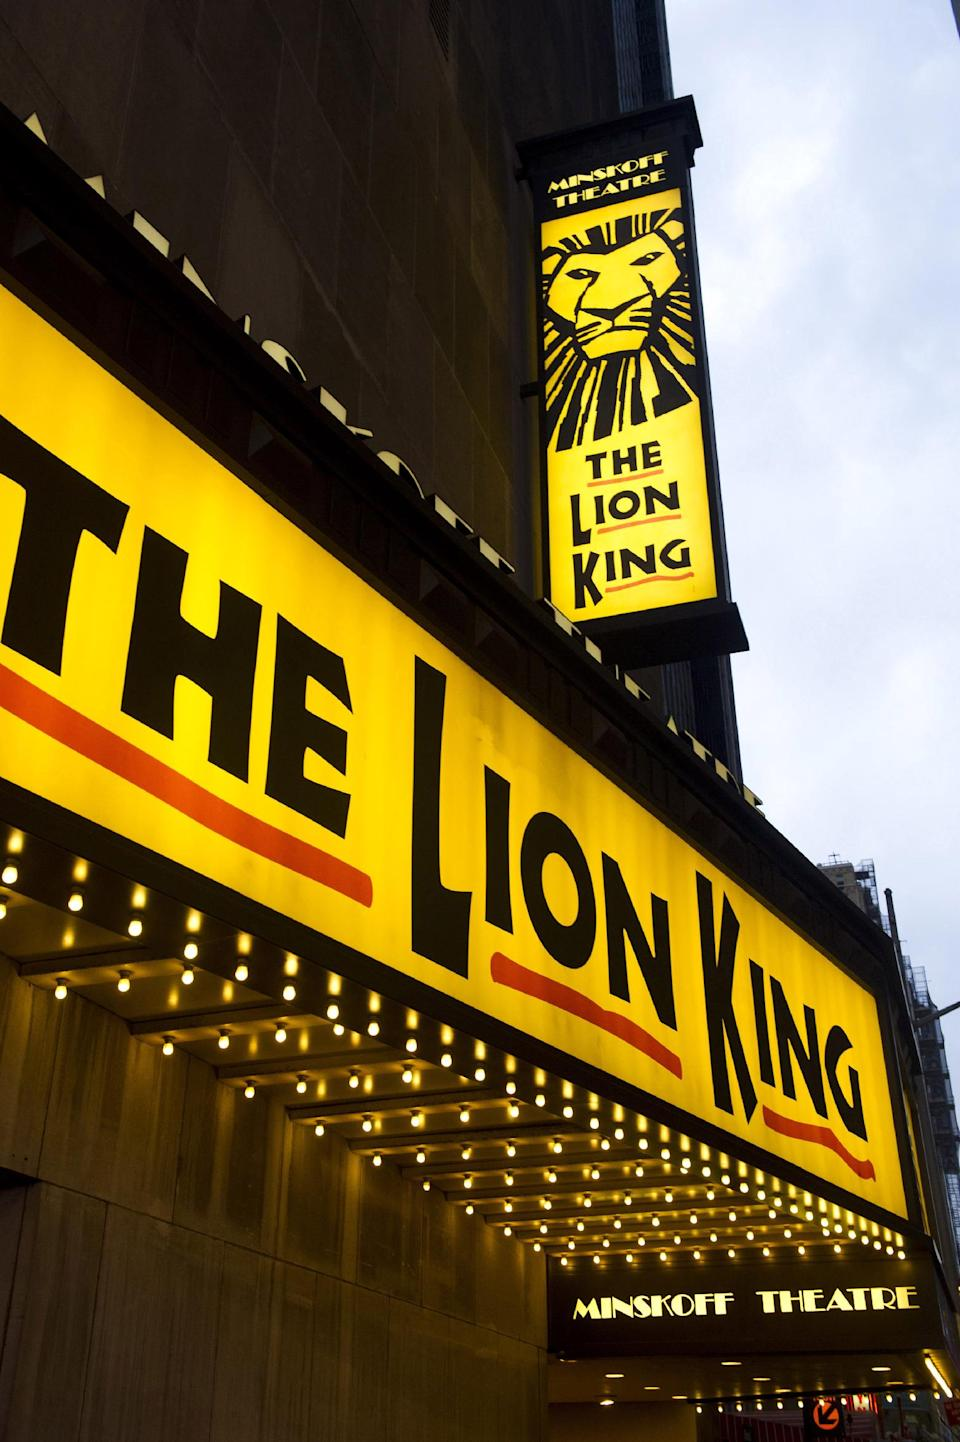 "FILE - In this Jan. 19, 2012 file photo,""The Lion King"" marquee is displayed at The Minskoff Theatre in New York. The Lion King"" has more reason to roar - it's on pace to end the week as the first Broadway show to earn $1 billion. (AP Photo/Charles Sykes, file)"